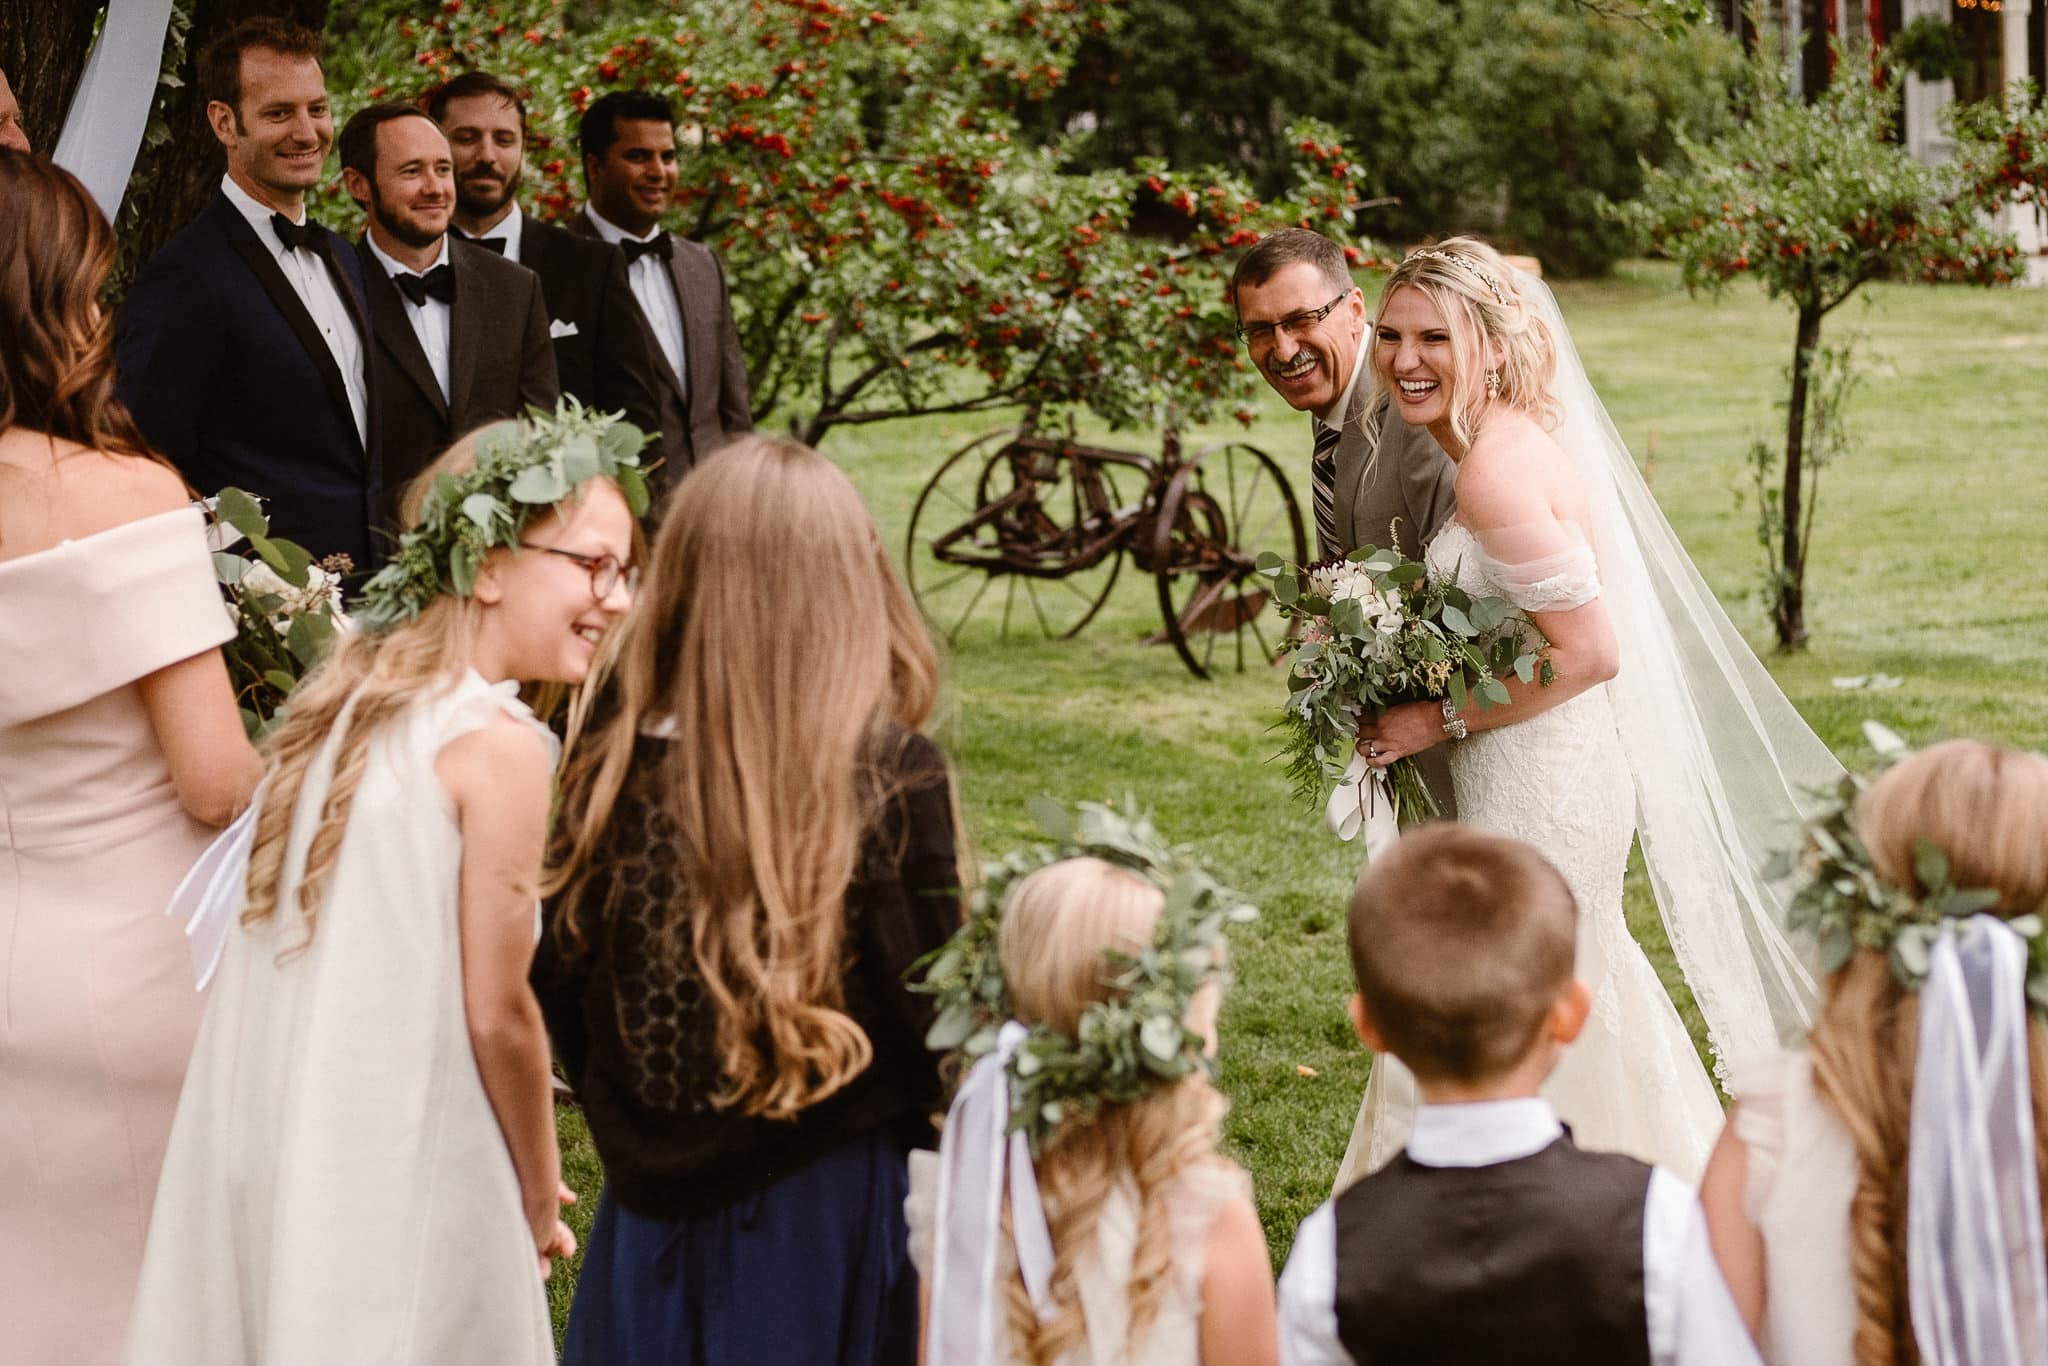 Aspen ranch wedding, Colorado mountain wedding photographer, private ranch wedding ceremony, bride and father walking up aisle